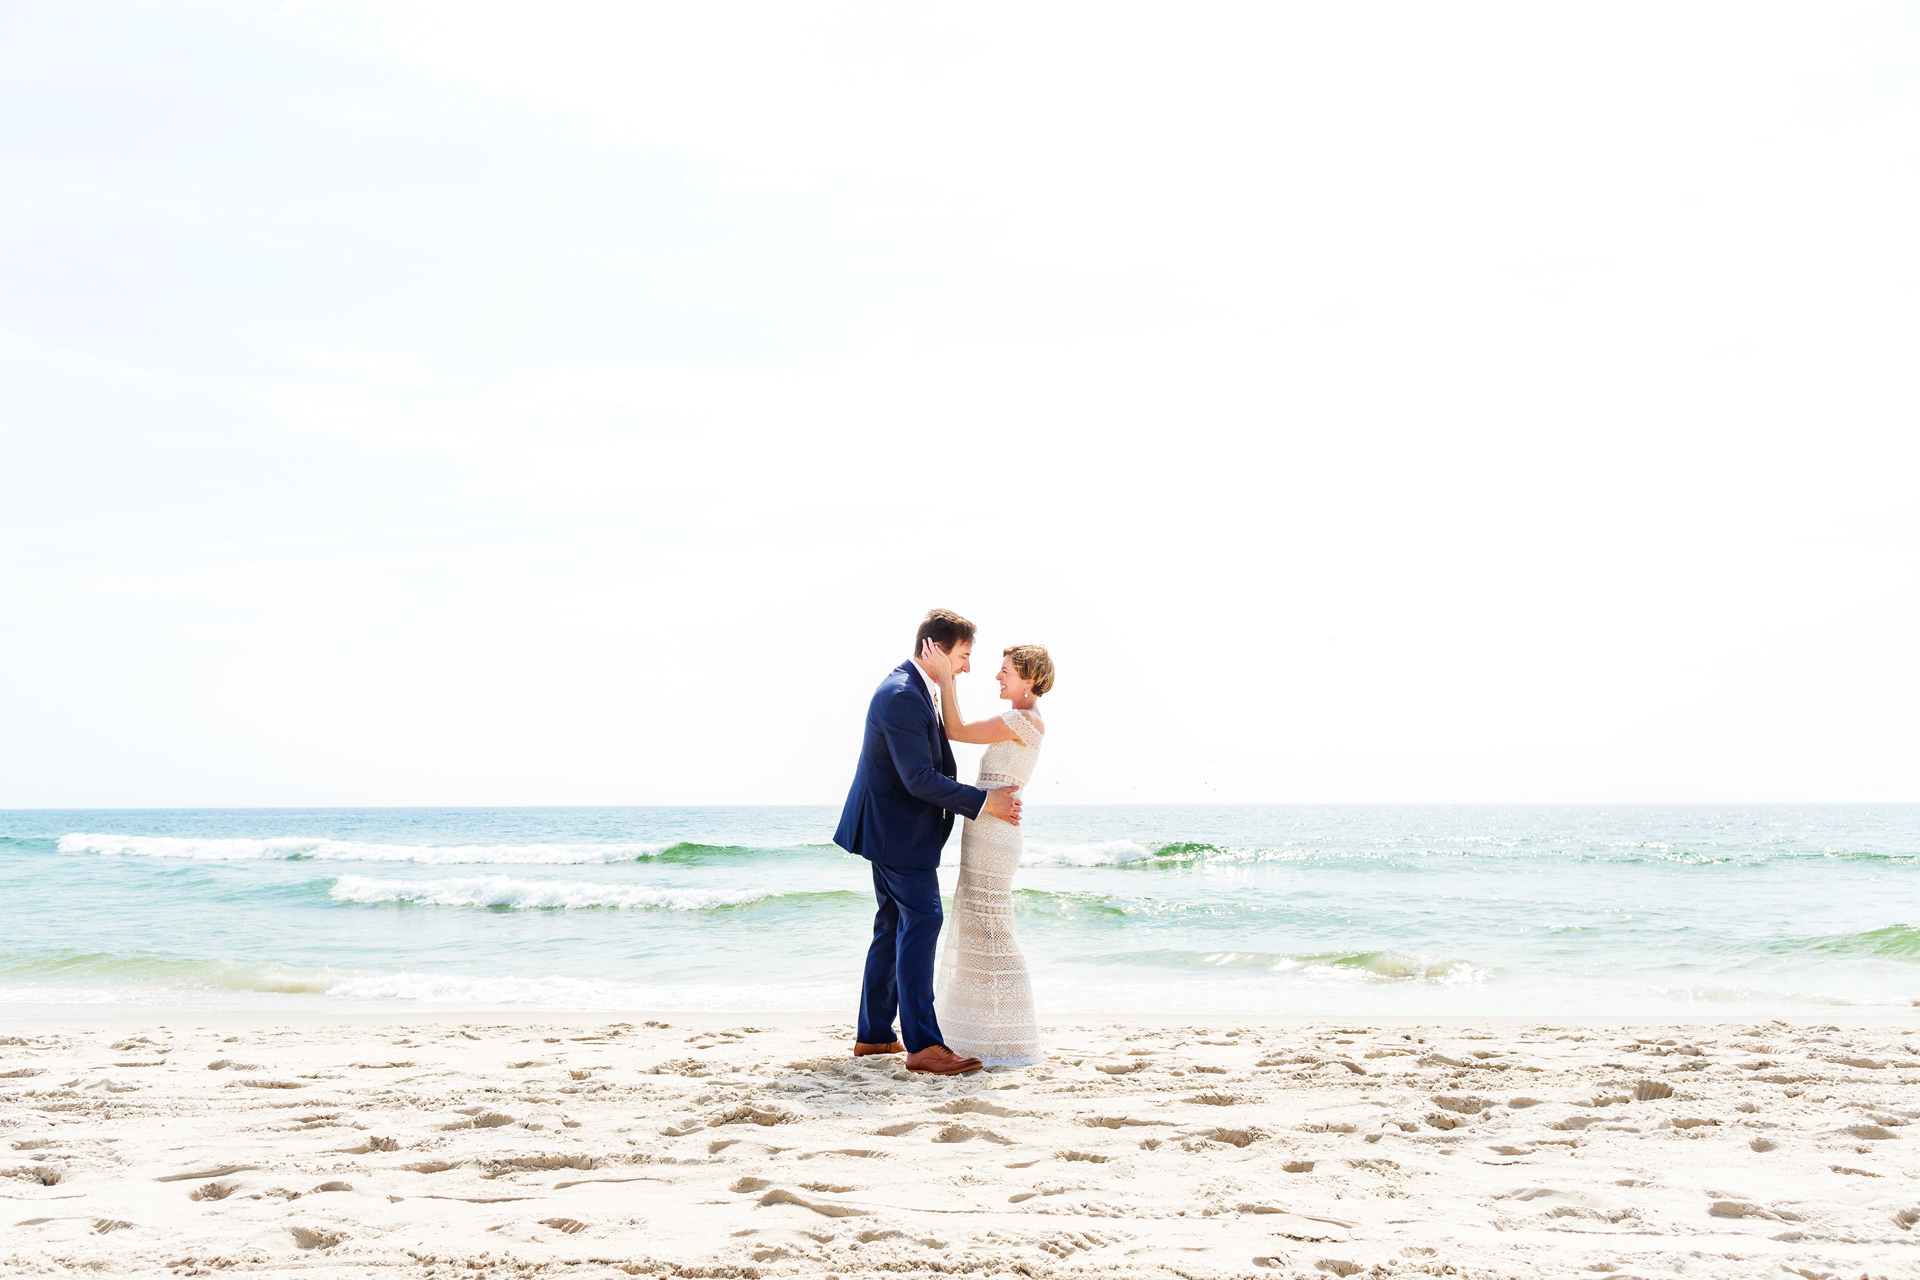 New Jersey Beach Elopement Portrait Photography | A mid-day summer wedding couple portrait